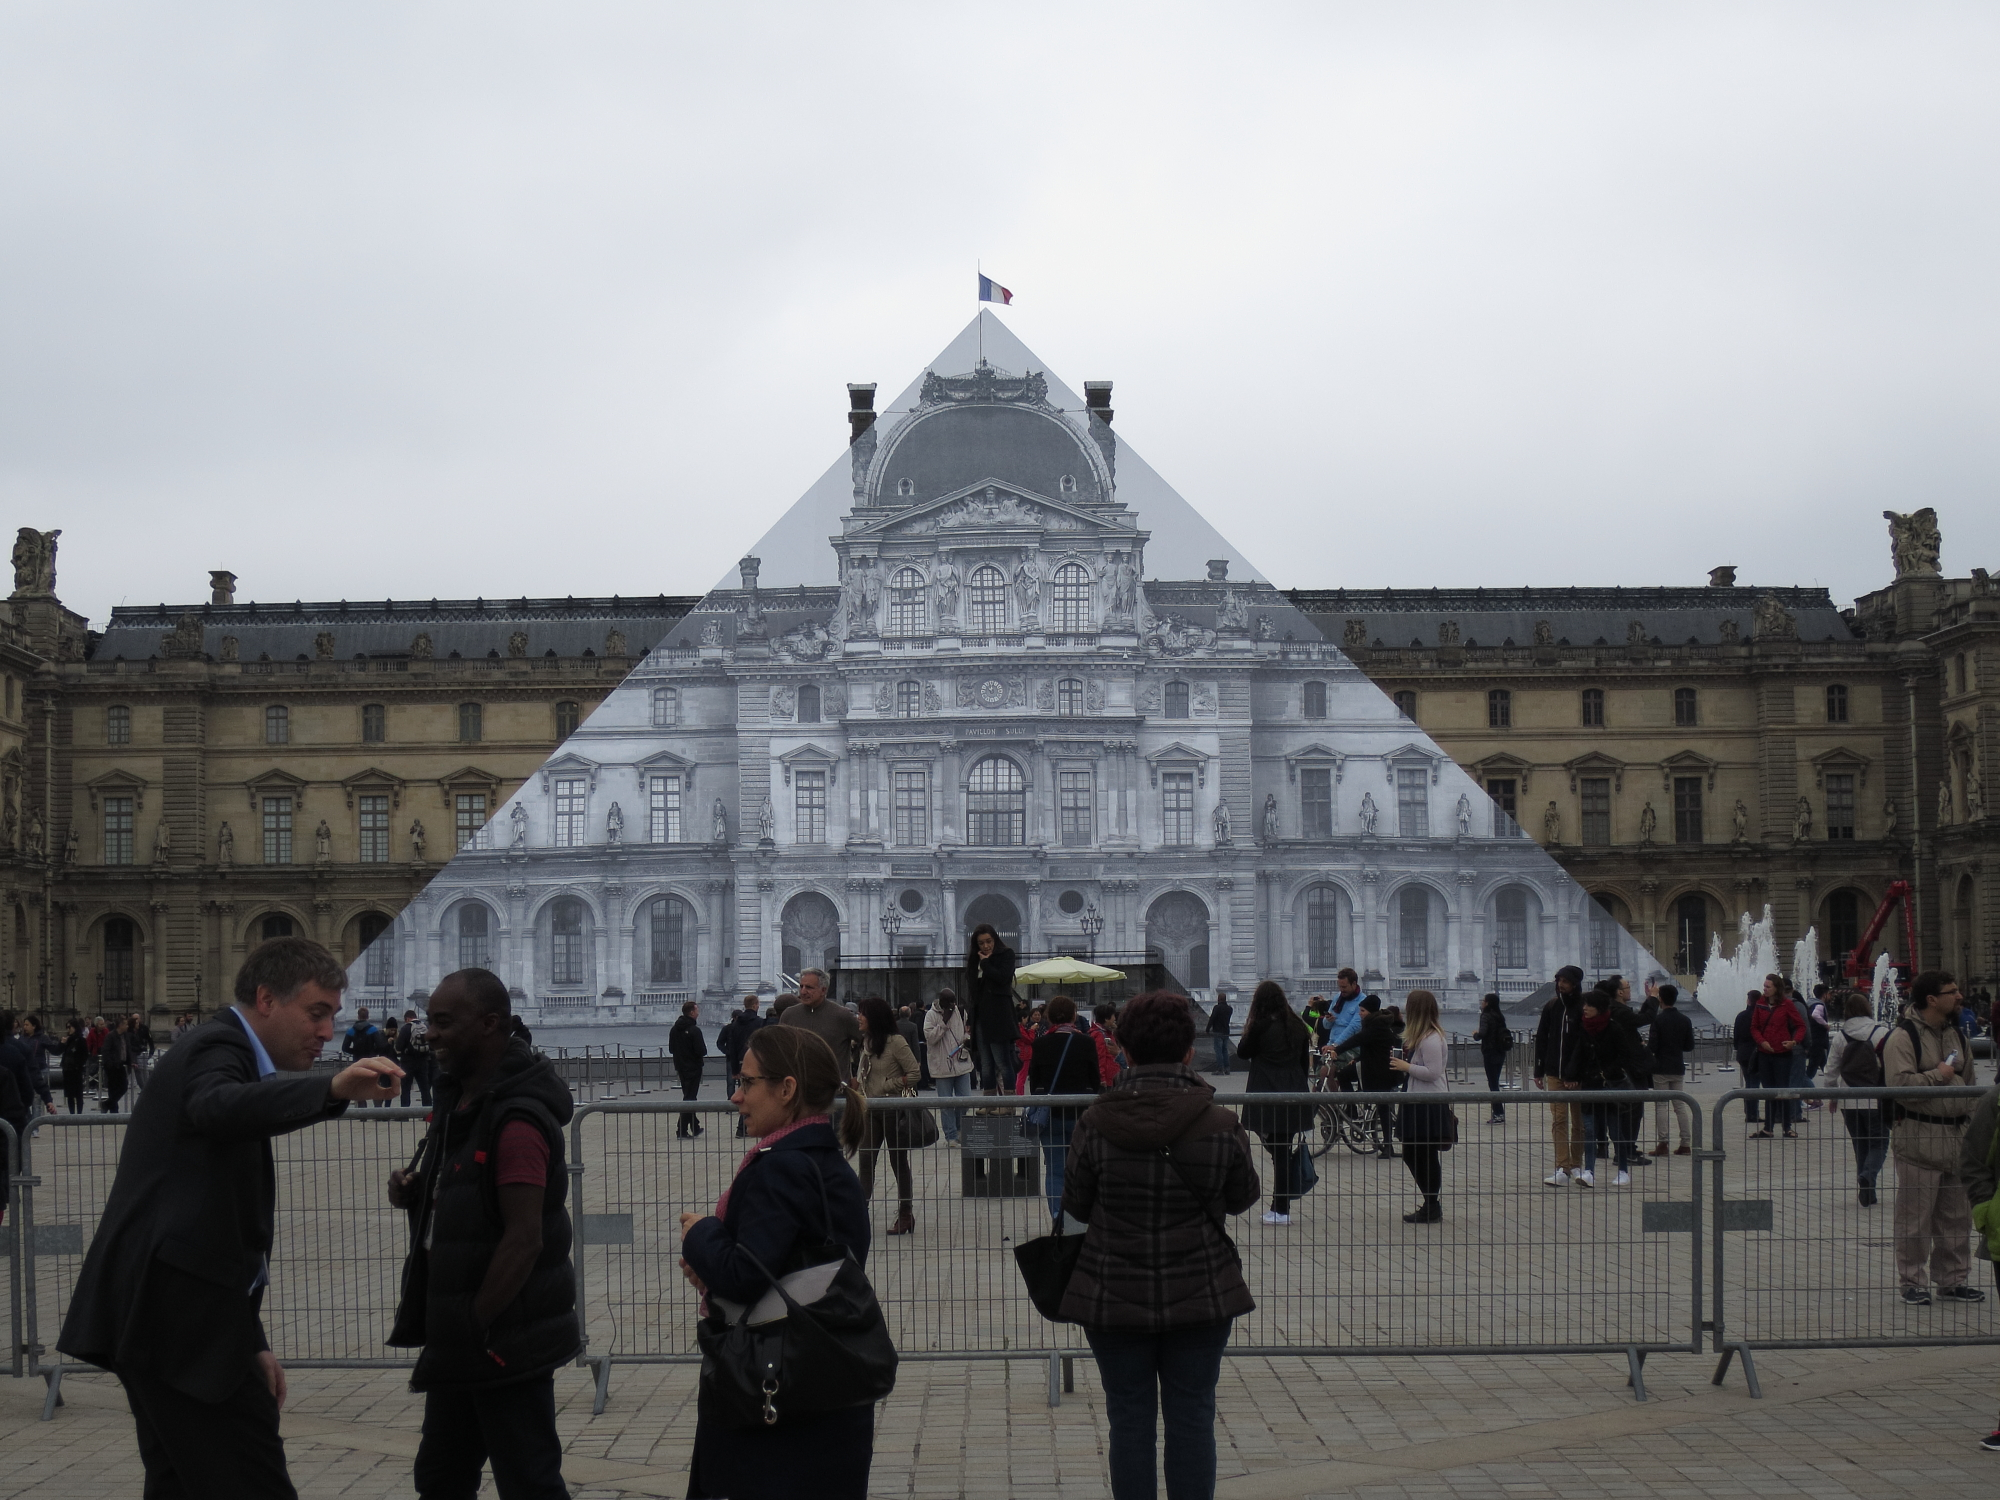 Street artist JR makes the pyramid disappear -- from one perspective